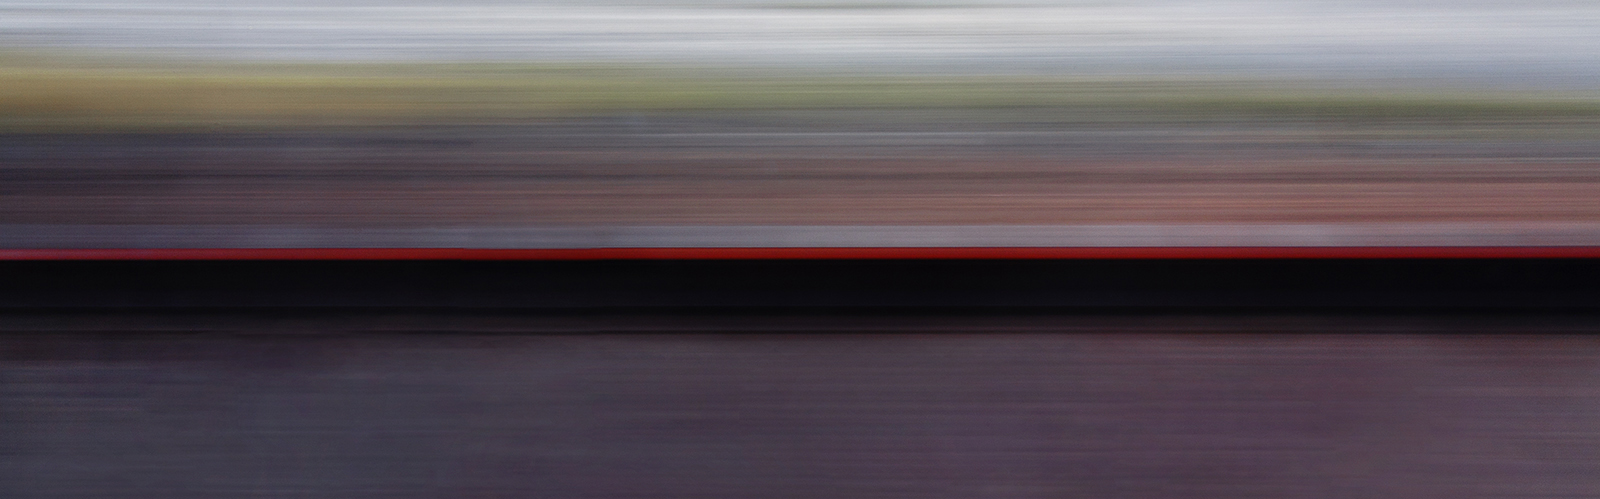 The Voyage Series  This series represents an abstract departure into visualization of travel as it feels from the more personal view of one traveling, not only between the spheres of urbanity to more remote spaces, but also in a way that captures contemporary urban travel from one center to another. Being photographed on the surface of this earth, typically by train, the colors of the earth swirling past reflect the evolution and increase of the speed of travel, which has inexorably led to the urbanization of our world.